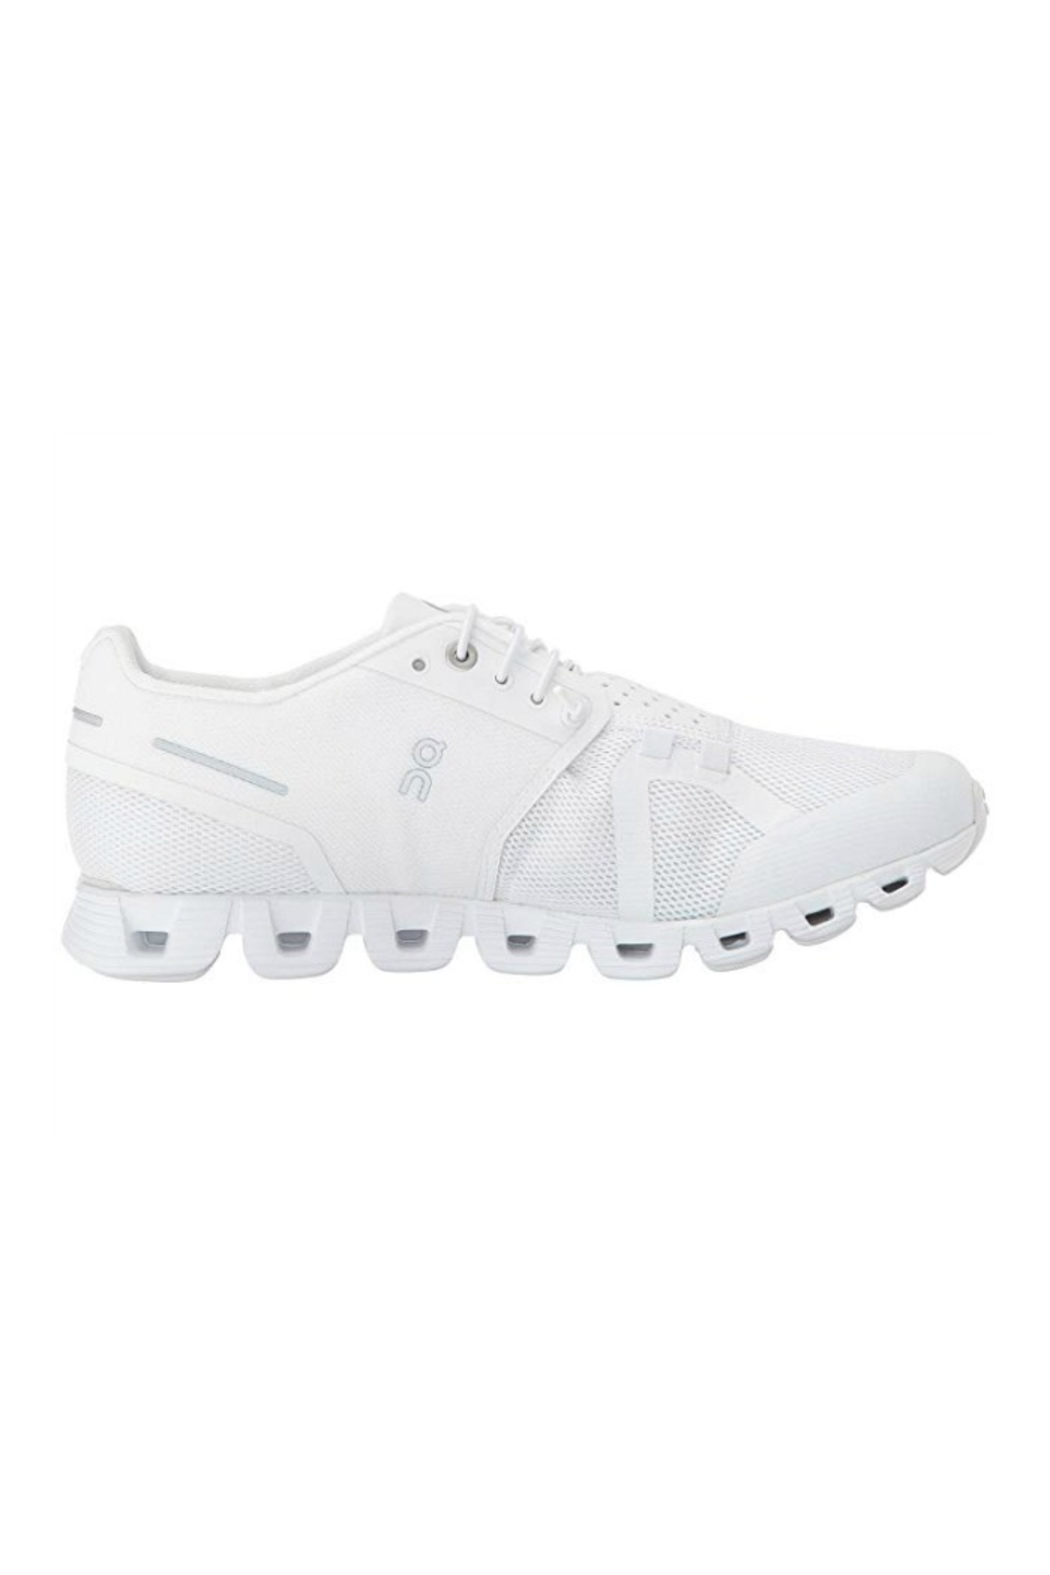 on running On Running Cloud Women's in All White - Main Image